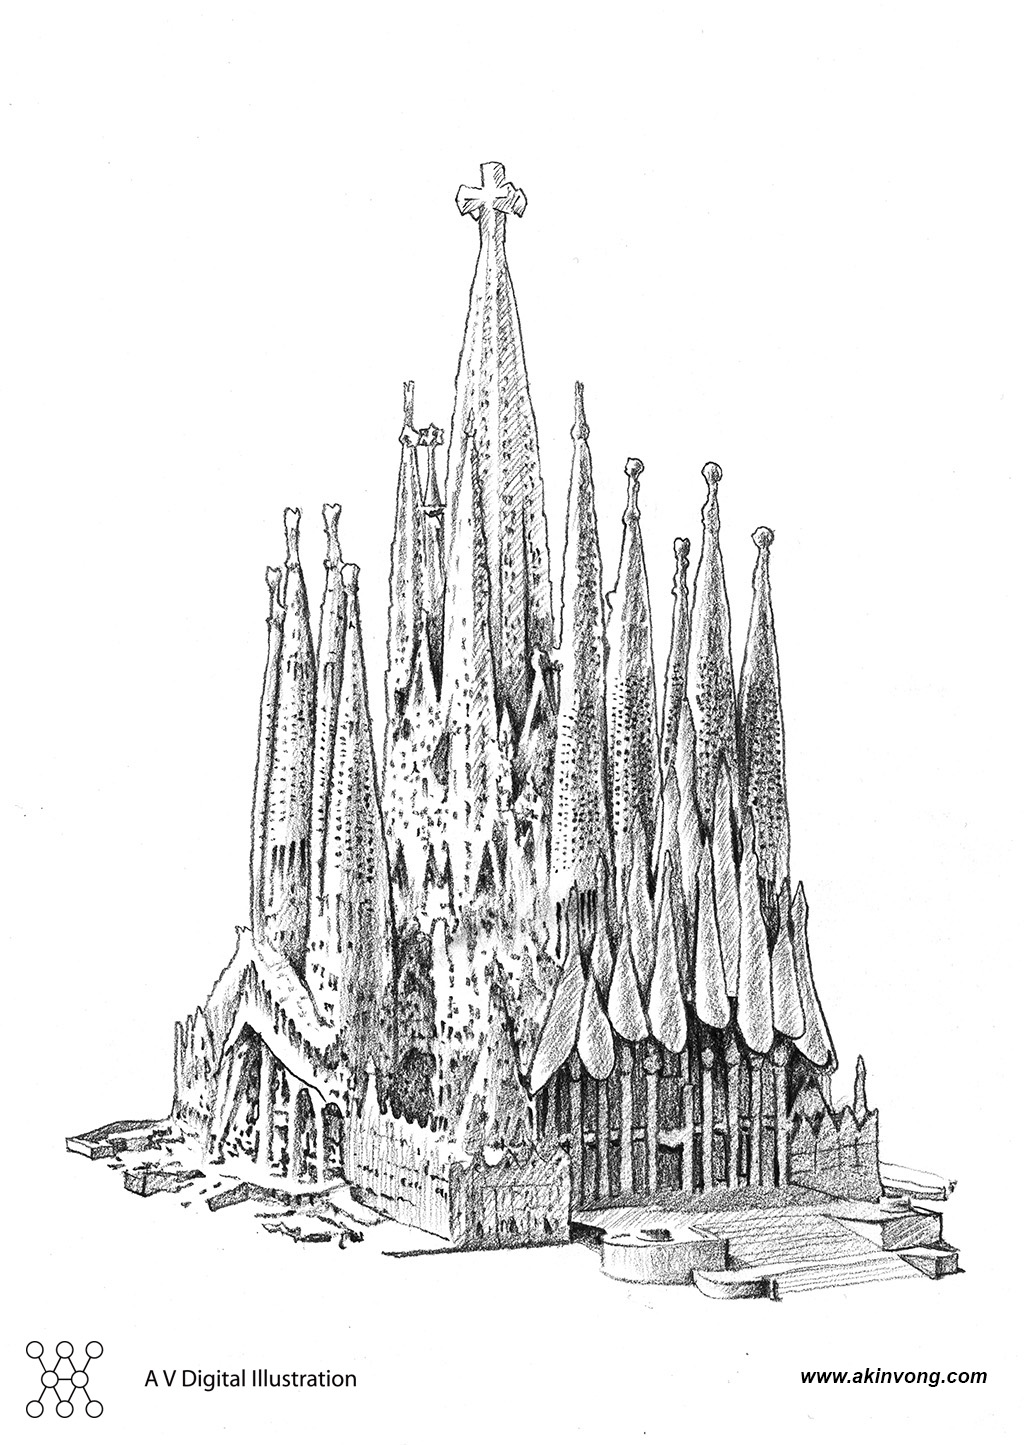 Pencil Sketch (Gaudi Architerture)03